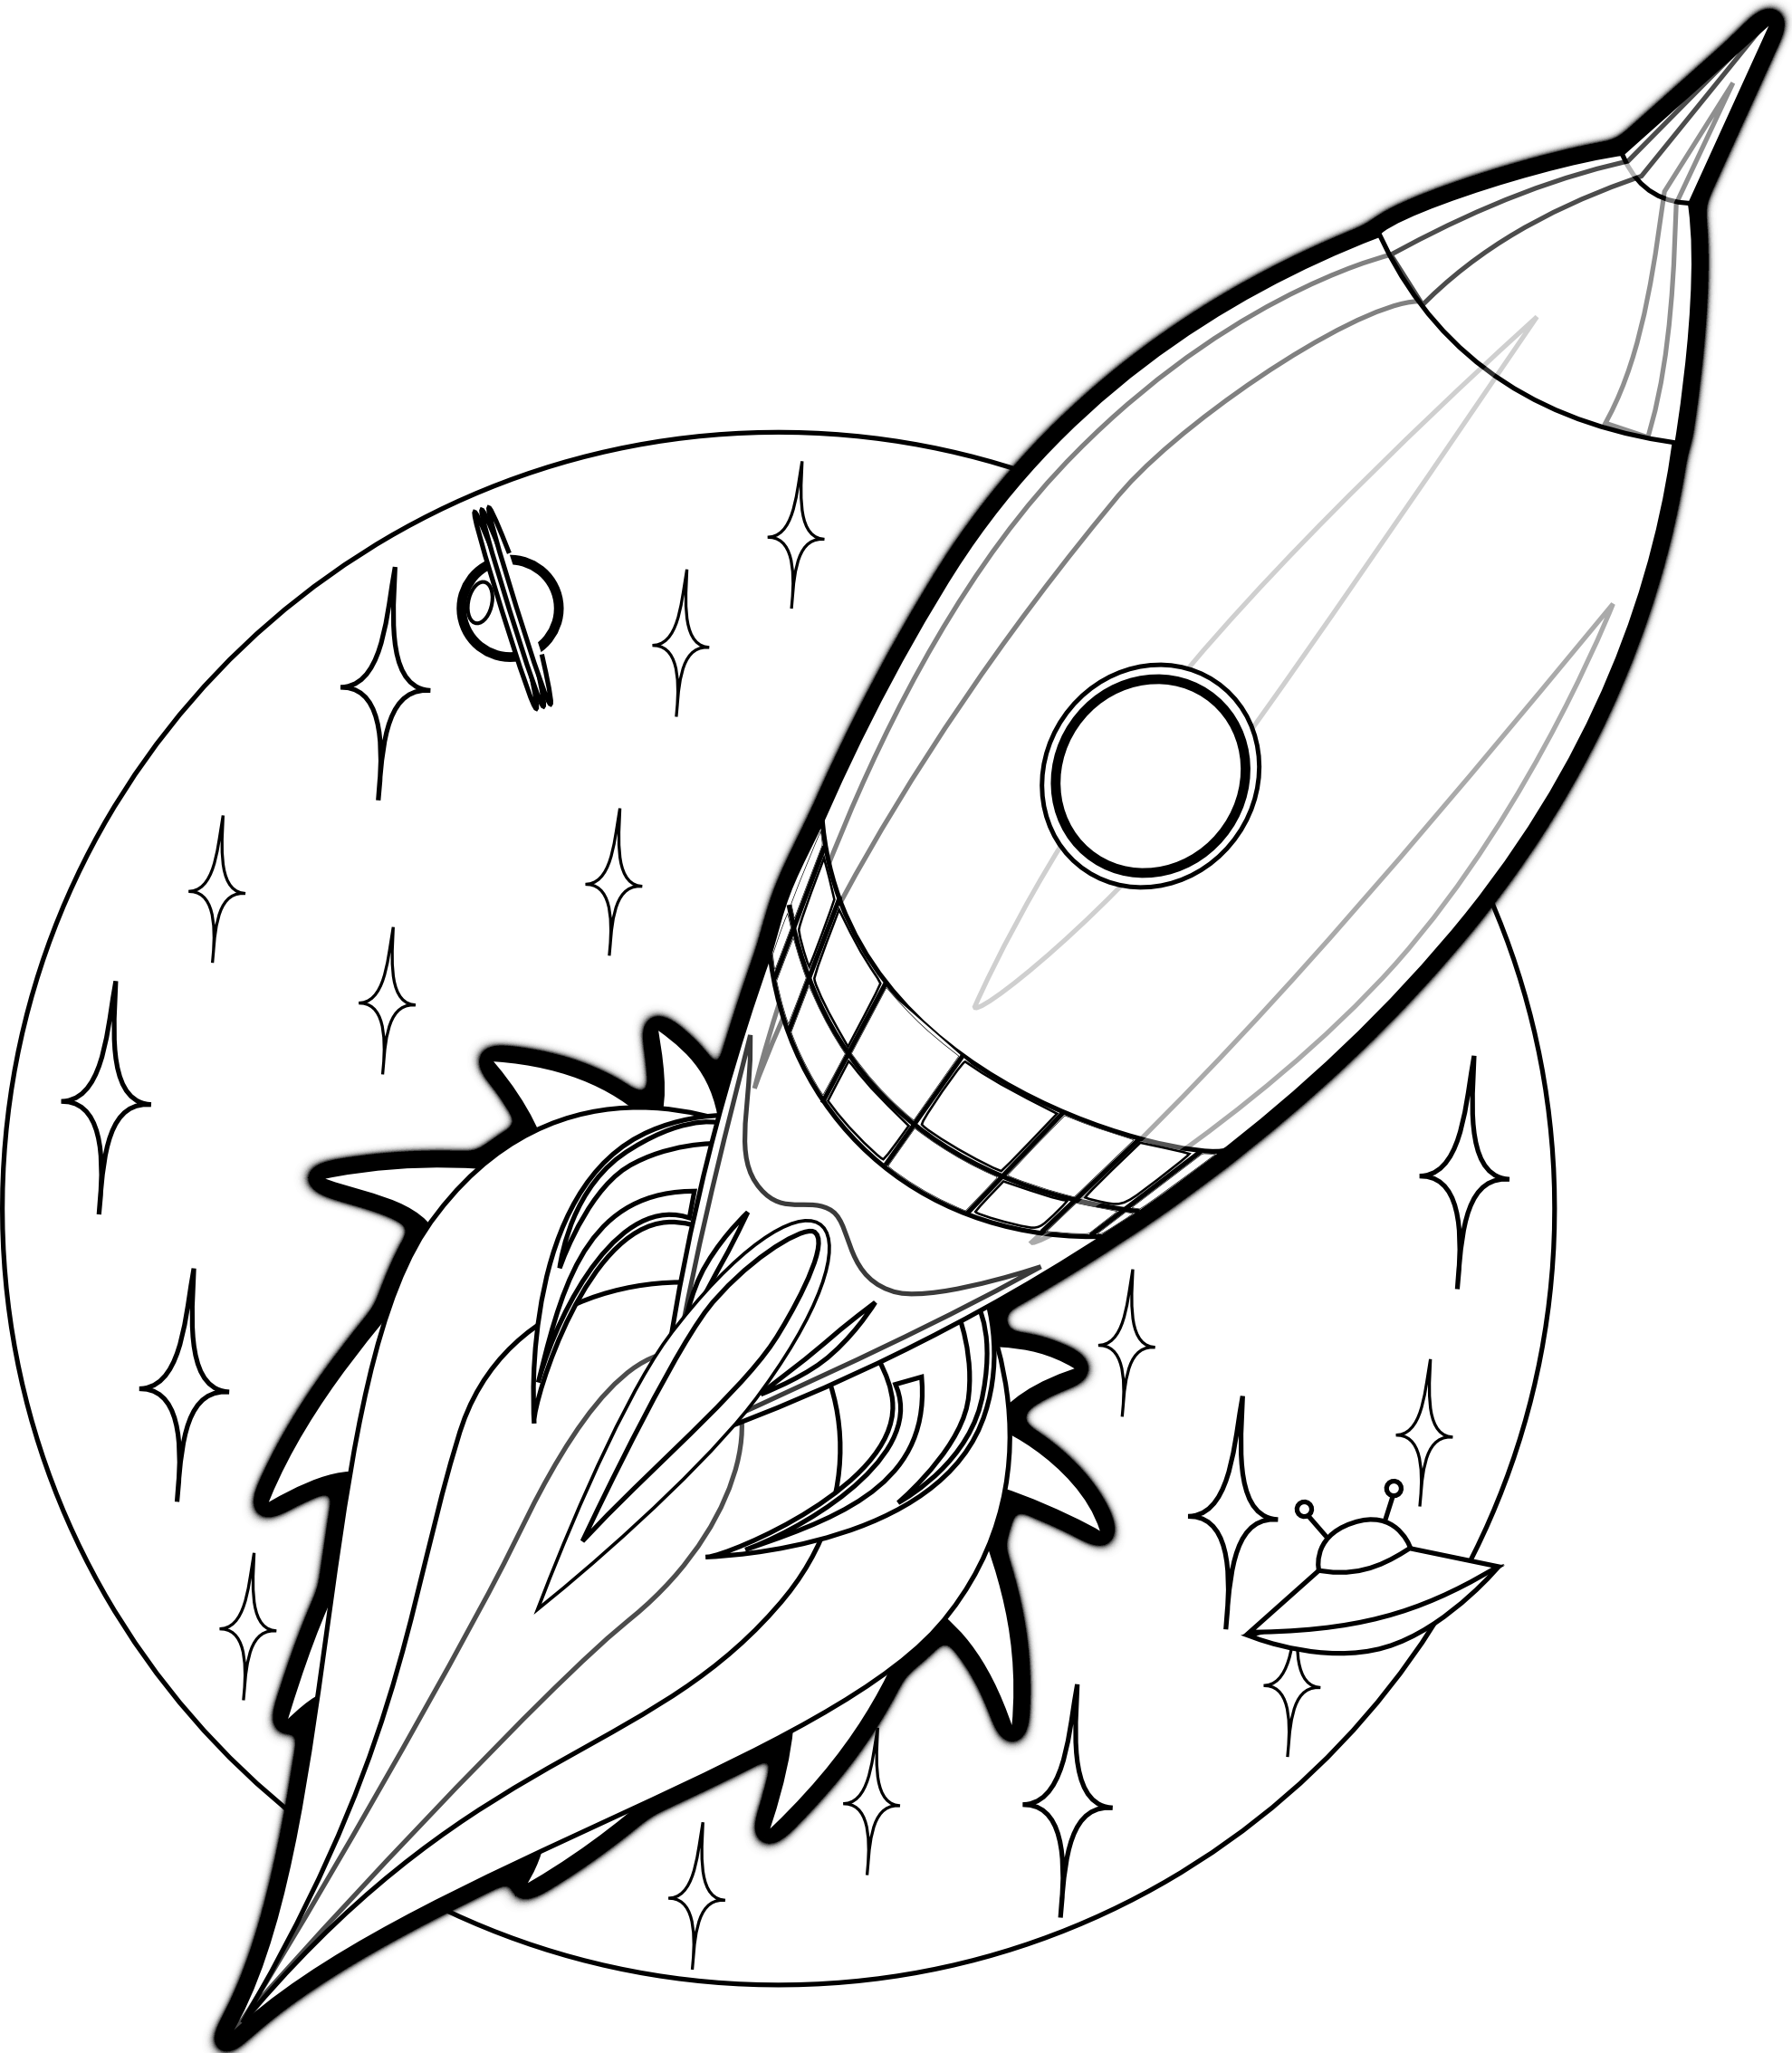 printable spaceship coloring page spaceship coloring pages to download and print for free coloring printable page spaceship